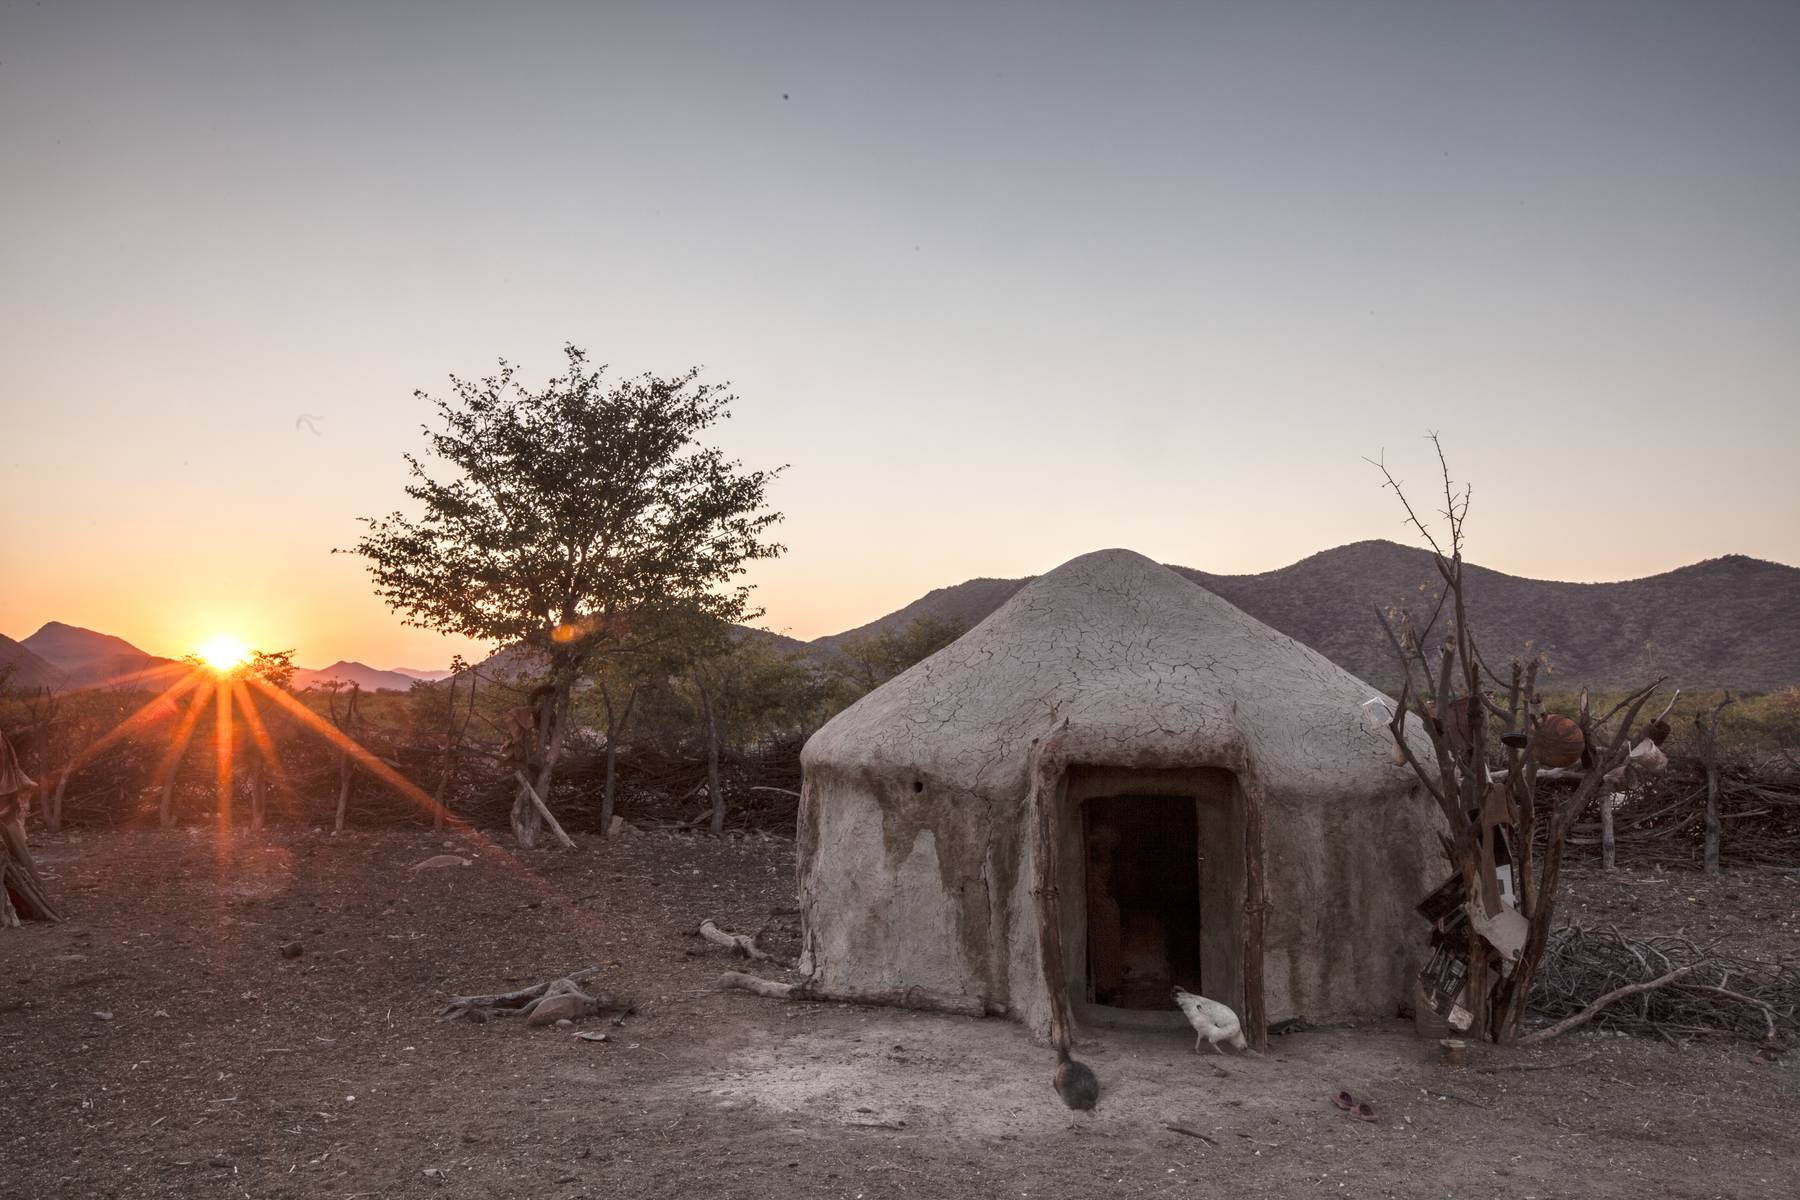 Himba Homestead